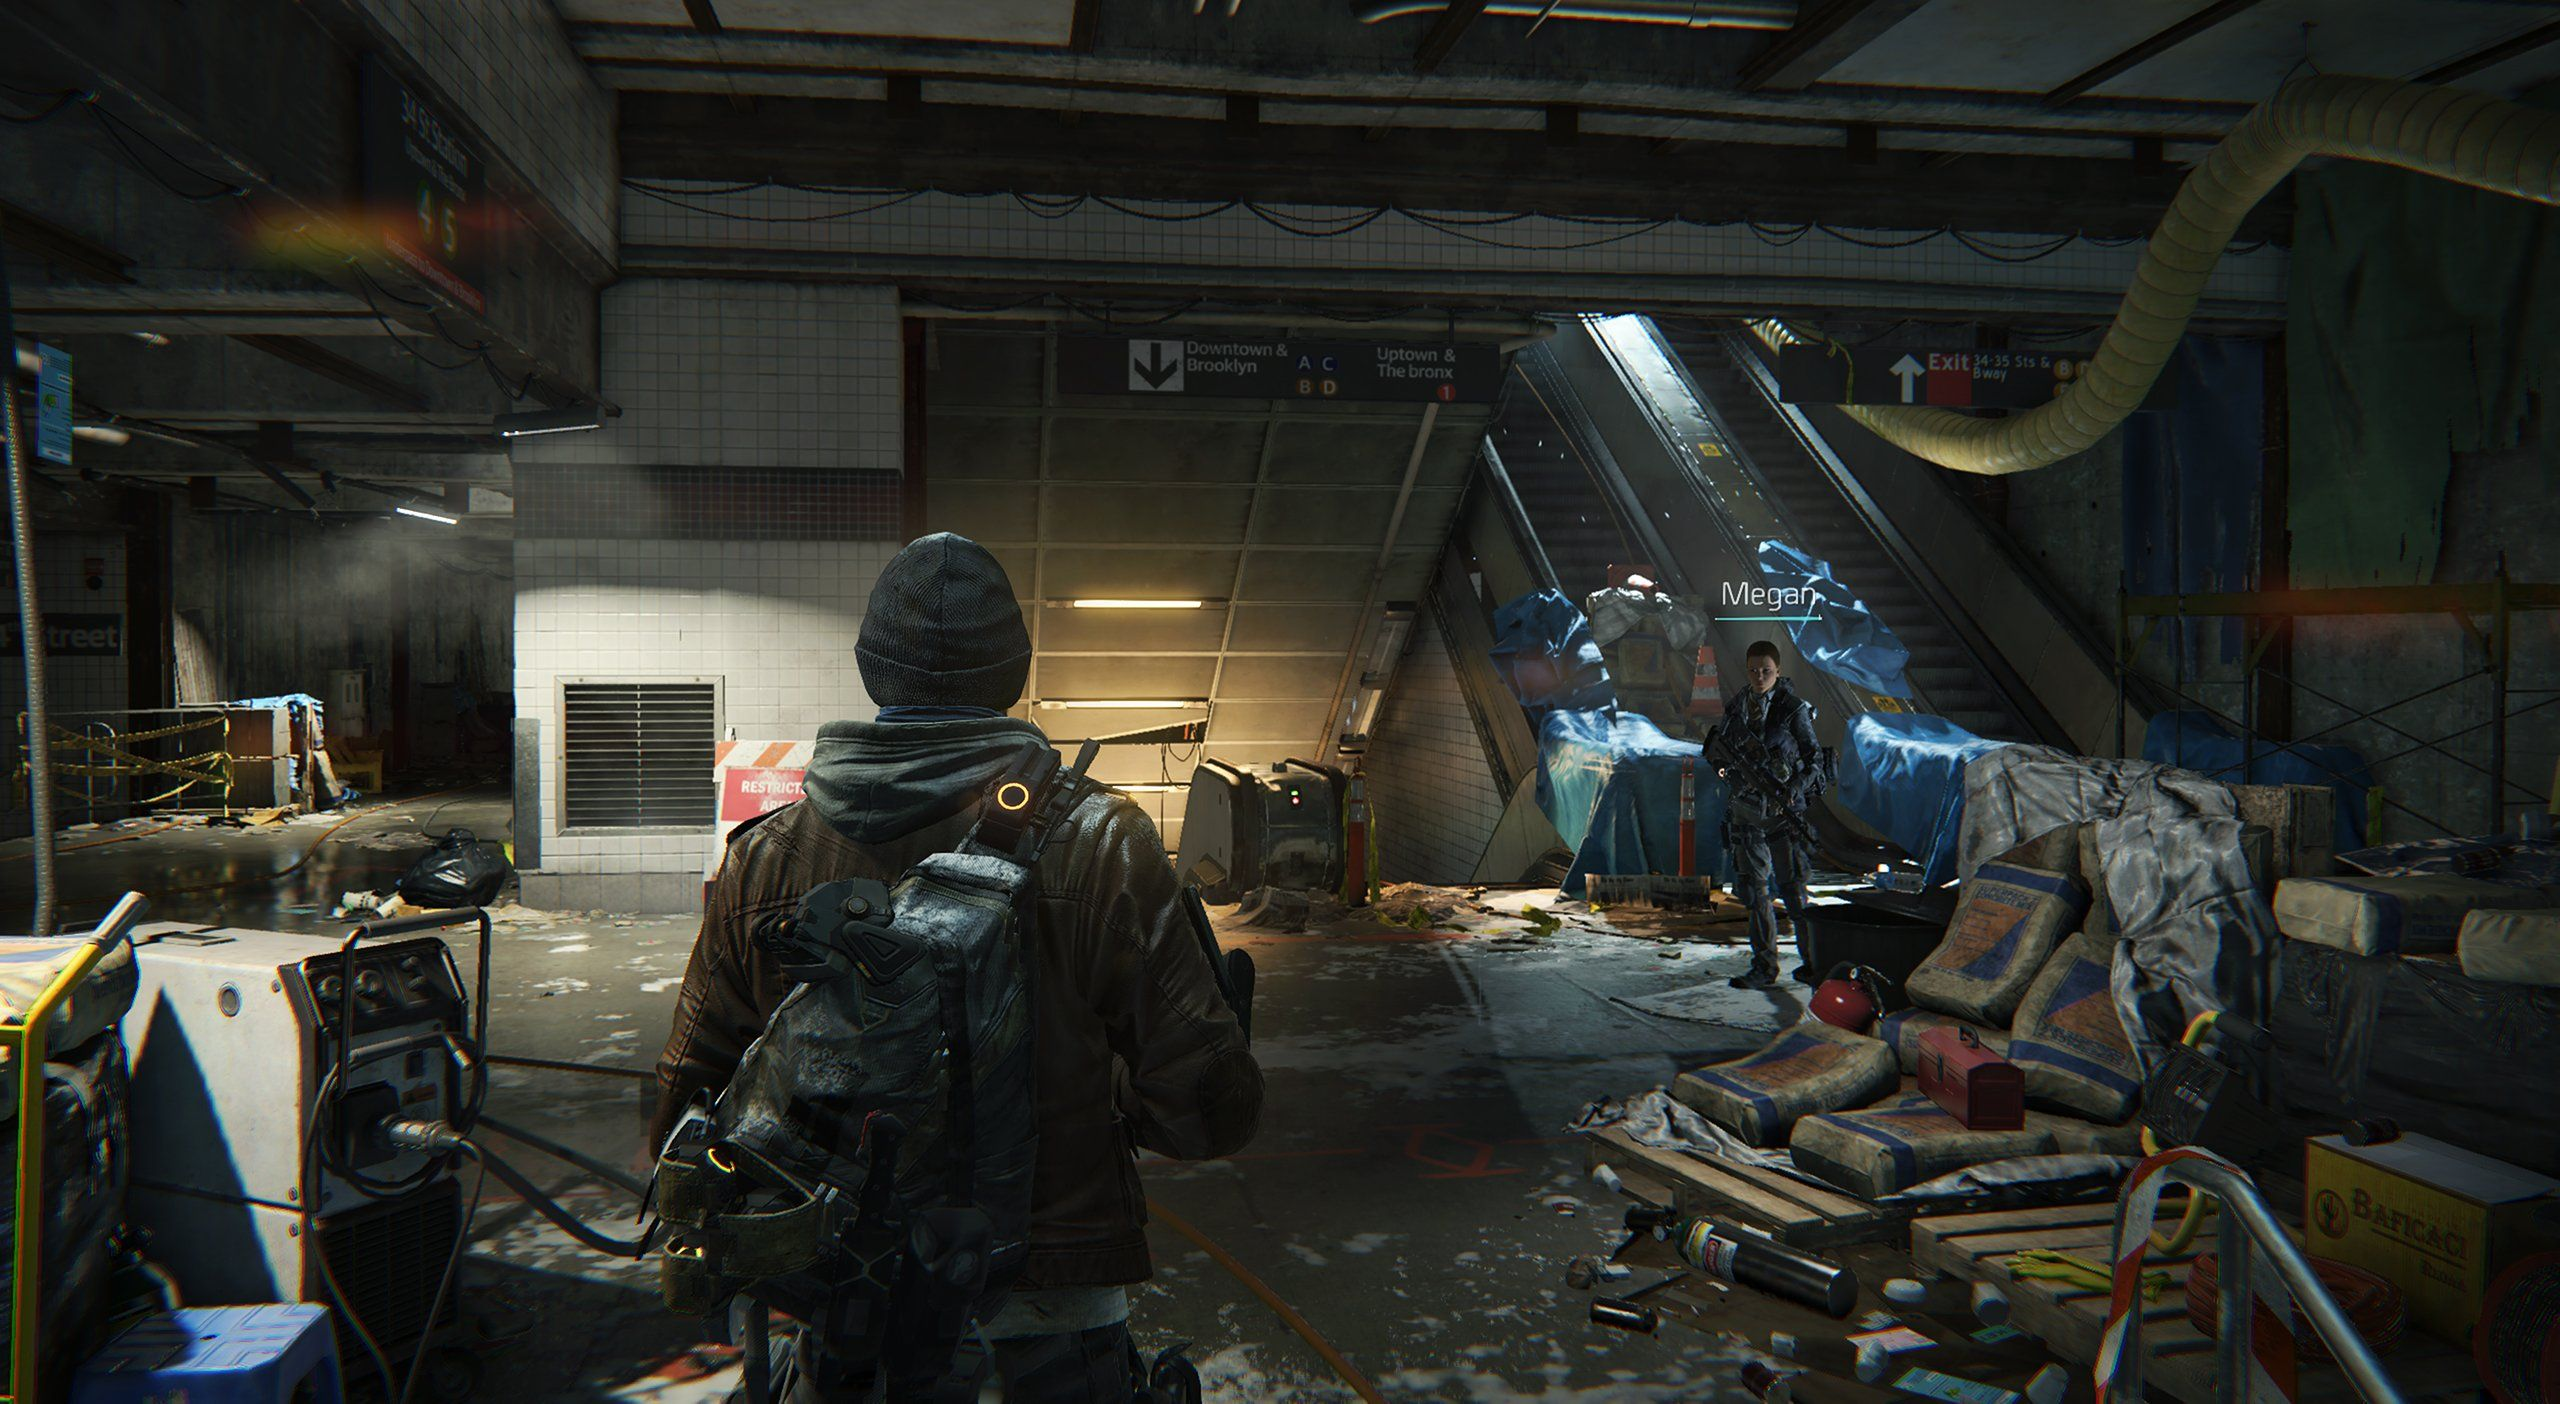 Tom Clancy's The Division (PC) - 3